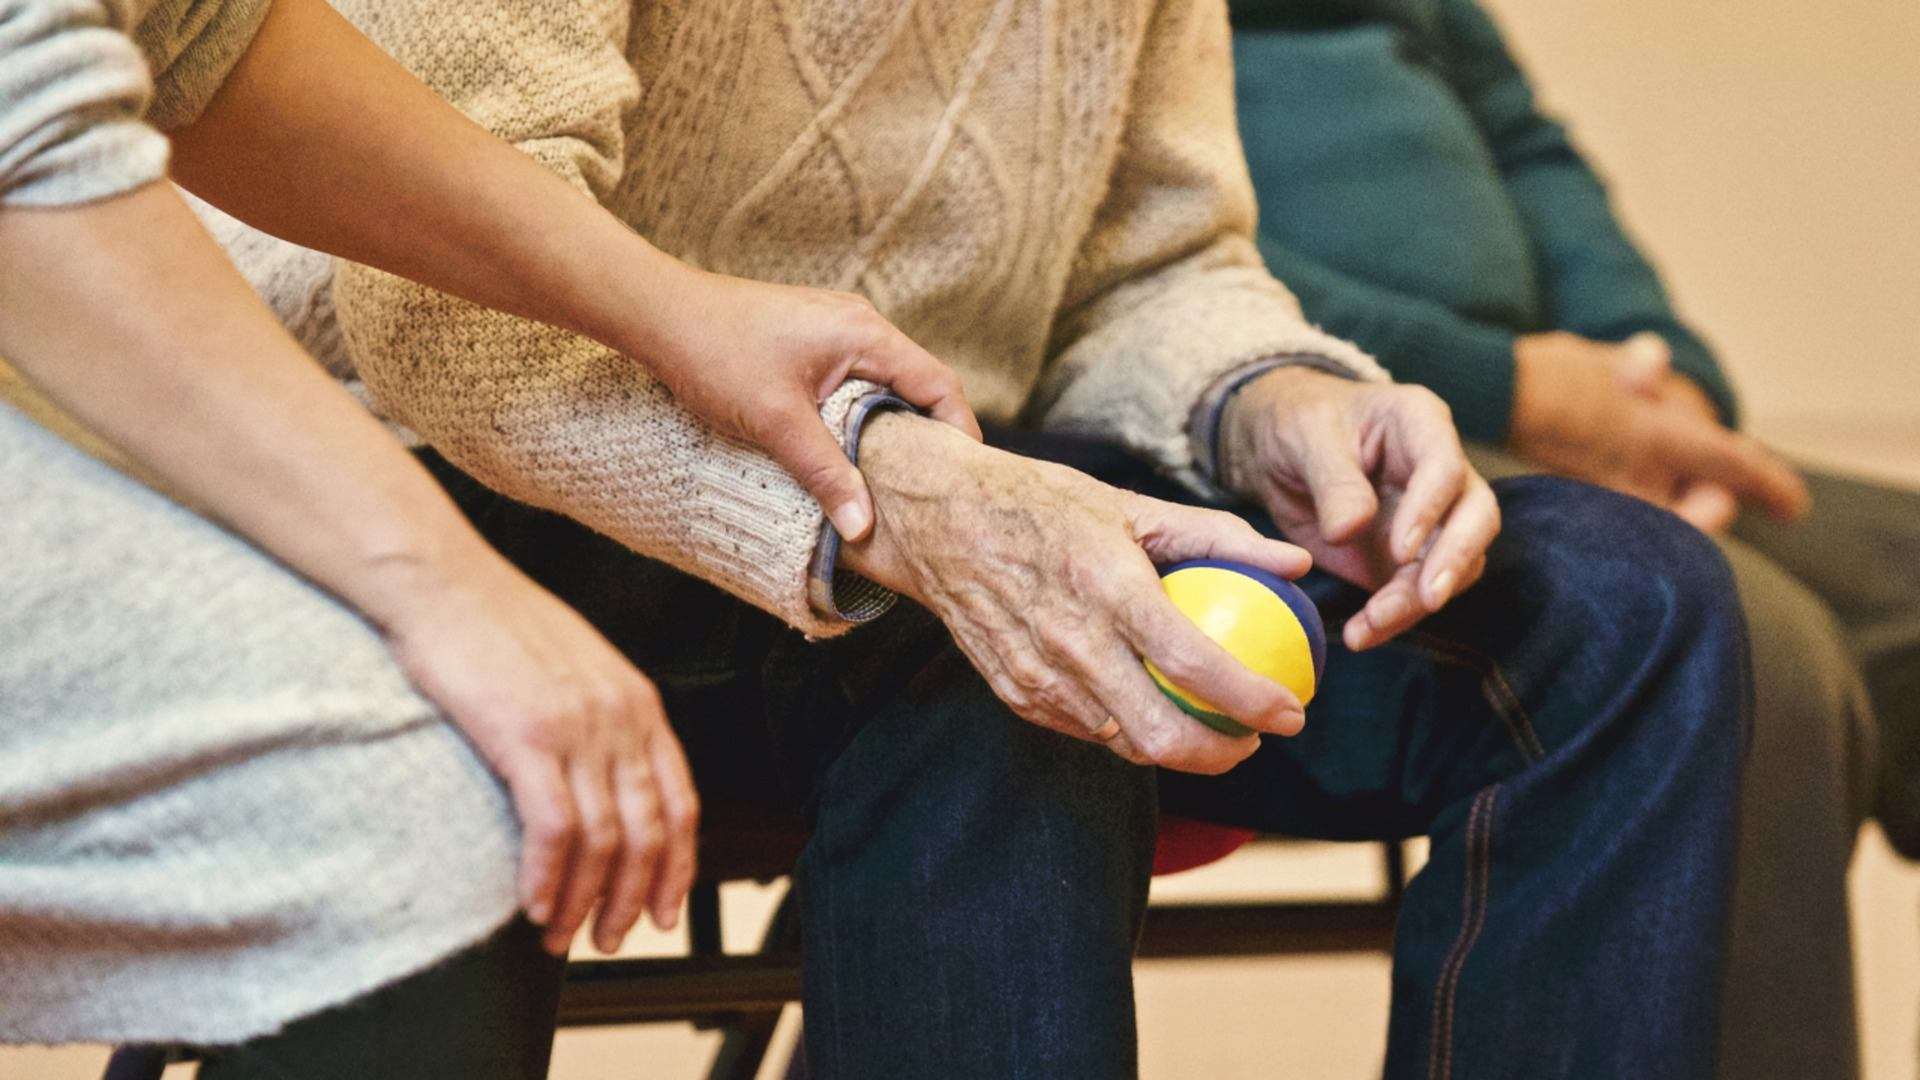 assisted-living-myths-misconceptions-activities